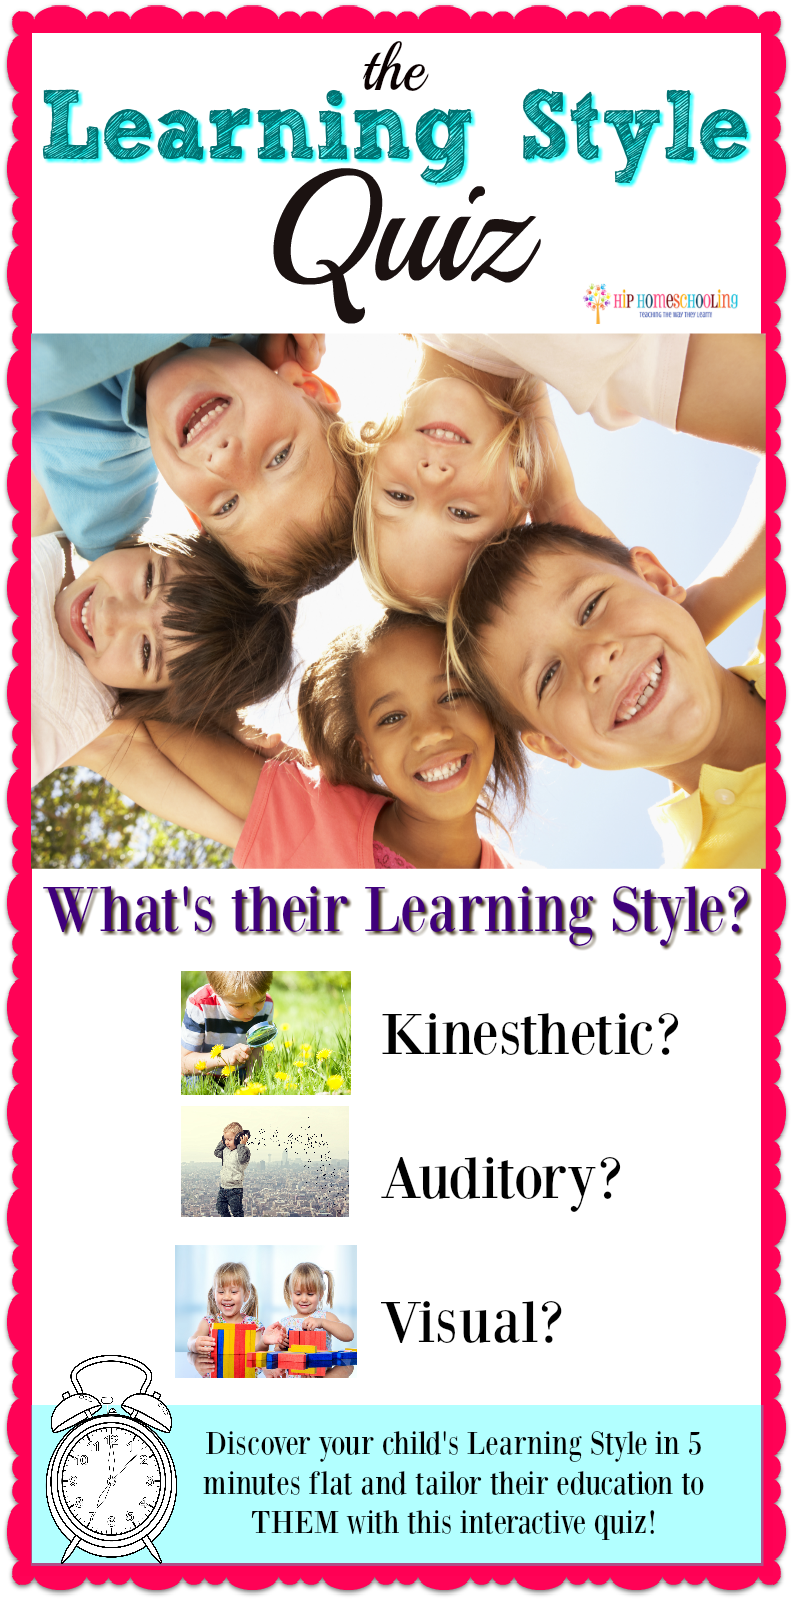 Do you know your child's learning style? Come take this simple, interactive learning style quiz and find out the best way to teach/homeschool YOUR child!